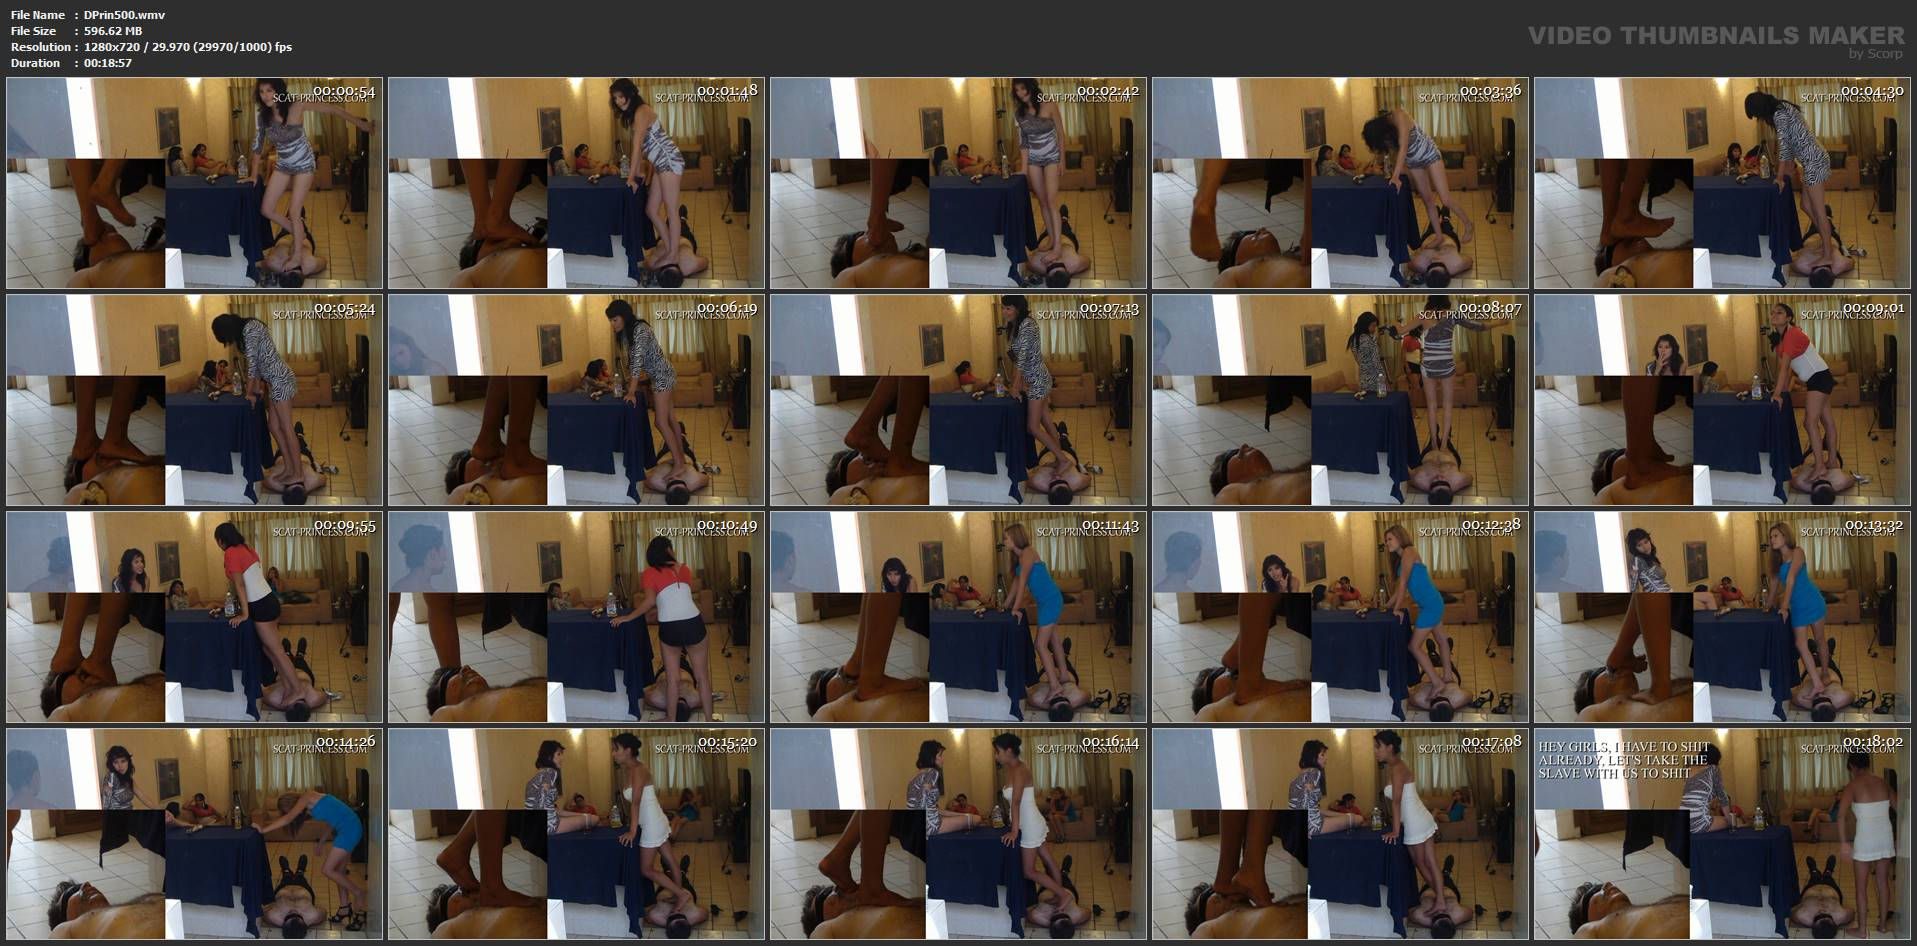 [DOM-PRINCESS] To much Shit on the Roof Part 1 Feet [HD][720p][WMV]